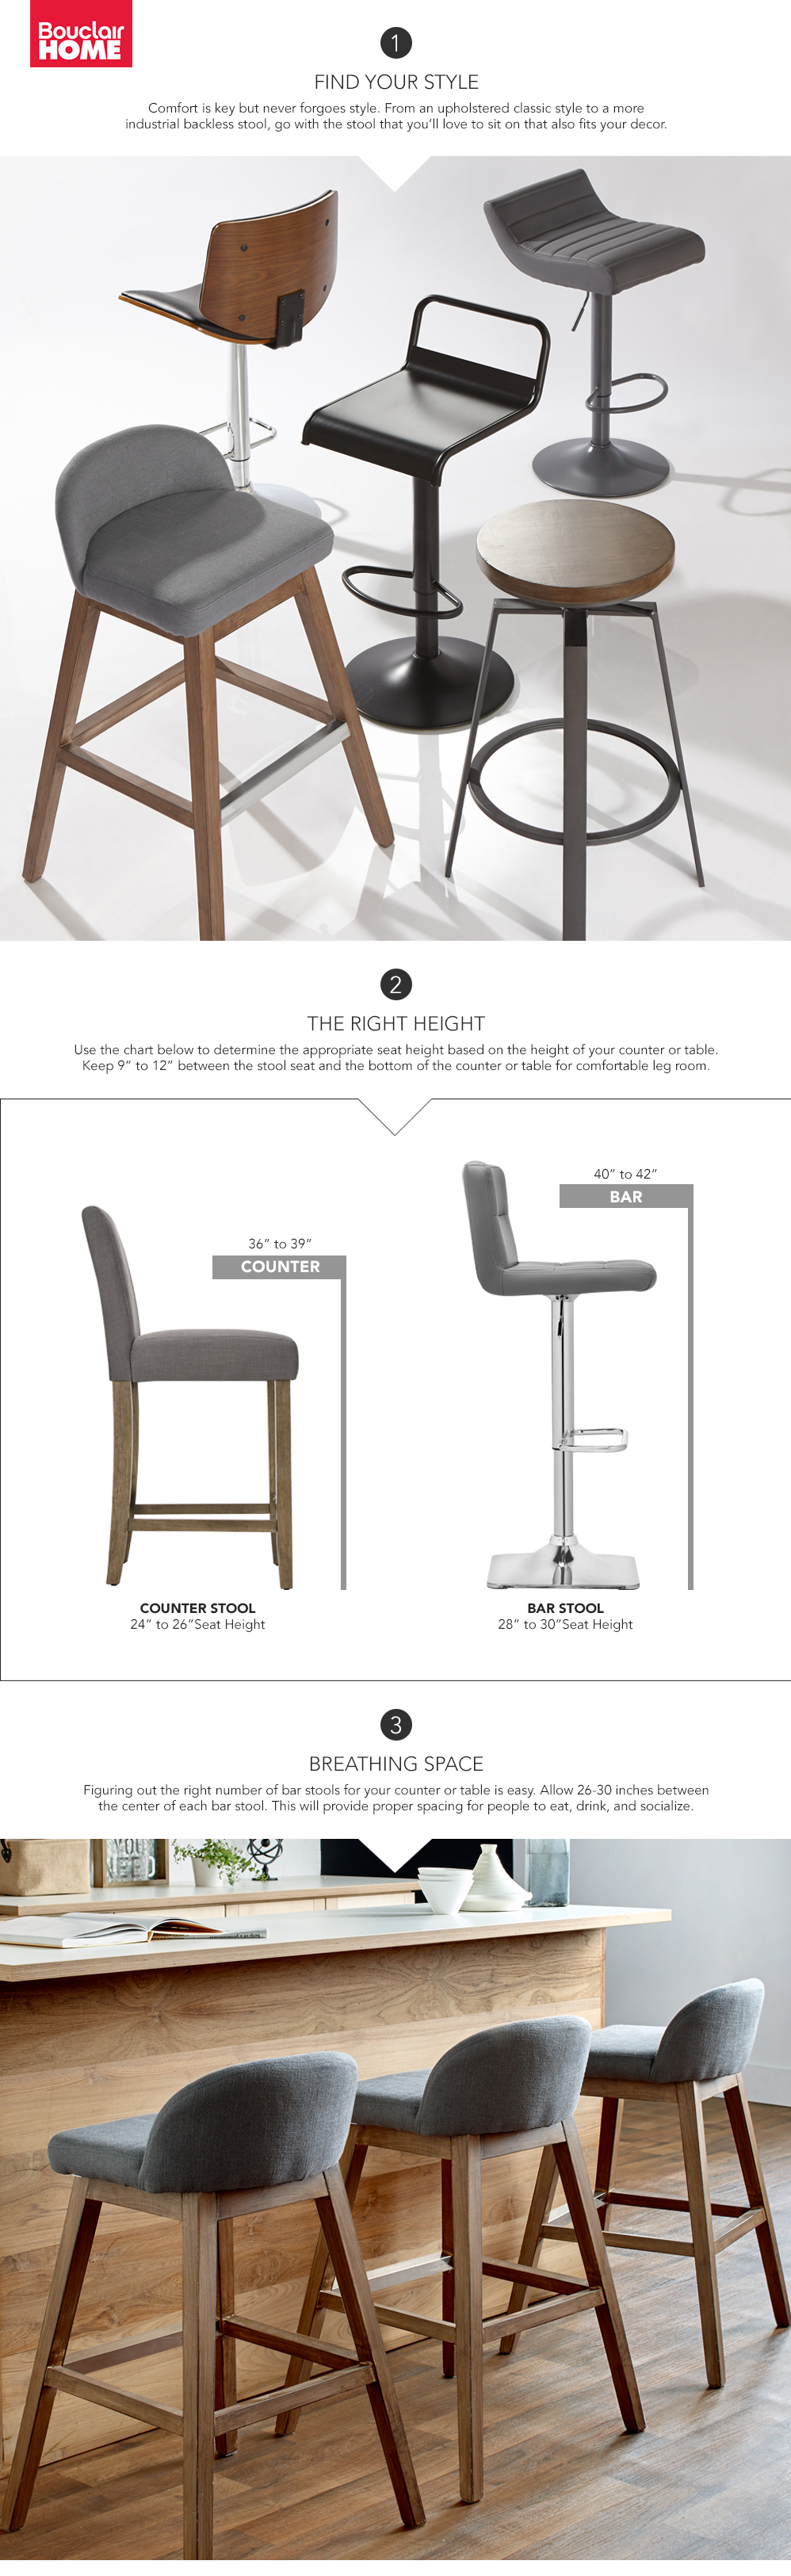 Amazing When It Comes To Bar Stools, One Size Does Not Fit All. Follow These Great Pictures